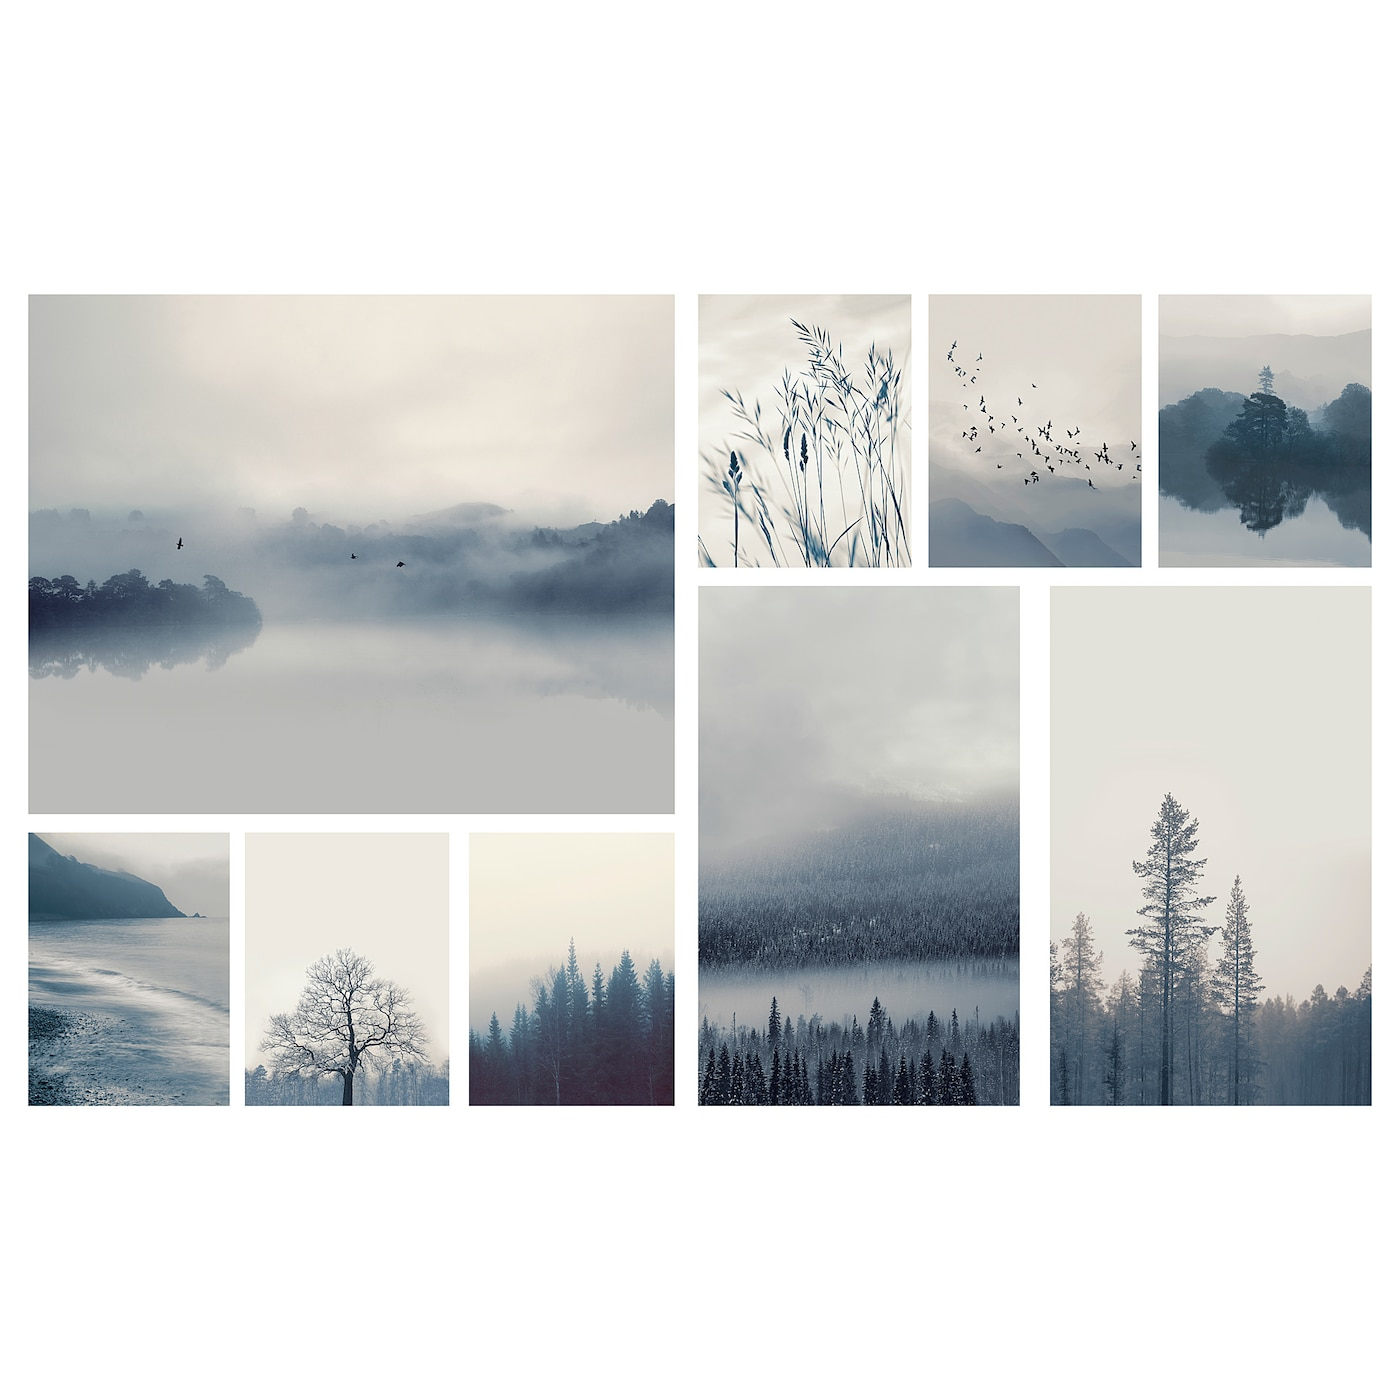 IKEA GRÖNBY picture, set of 9 You can personalise your home with artwork that expresses your style.